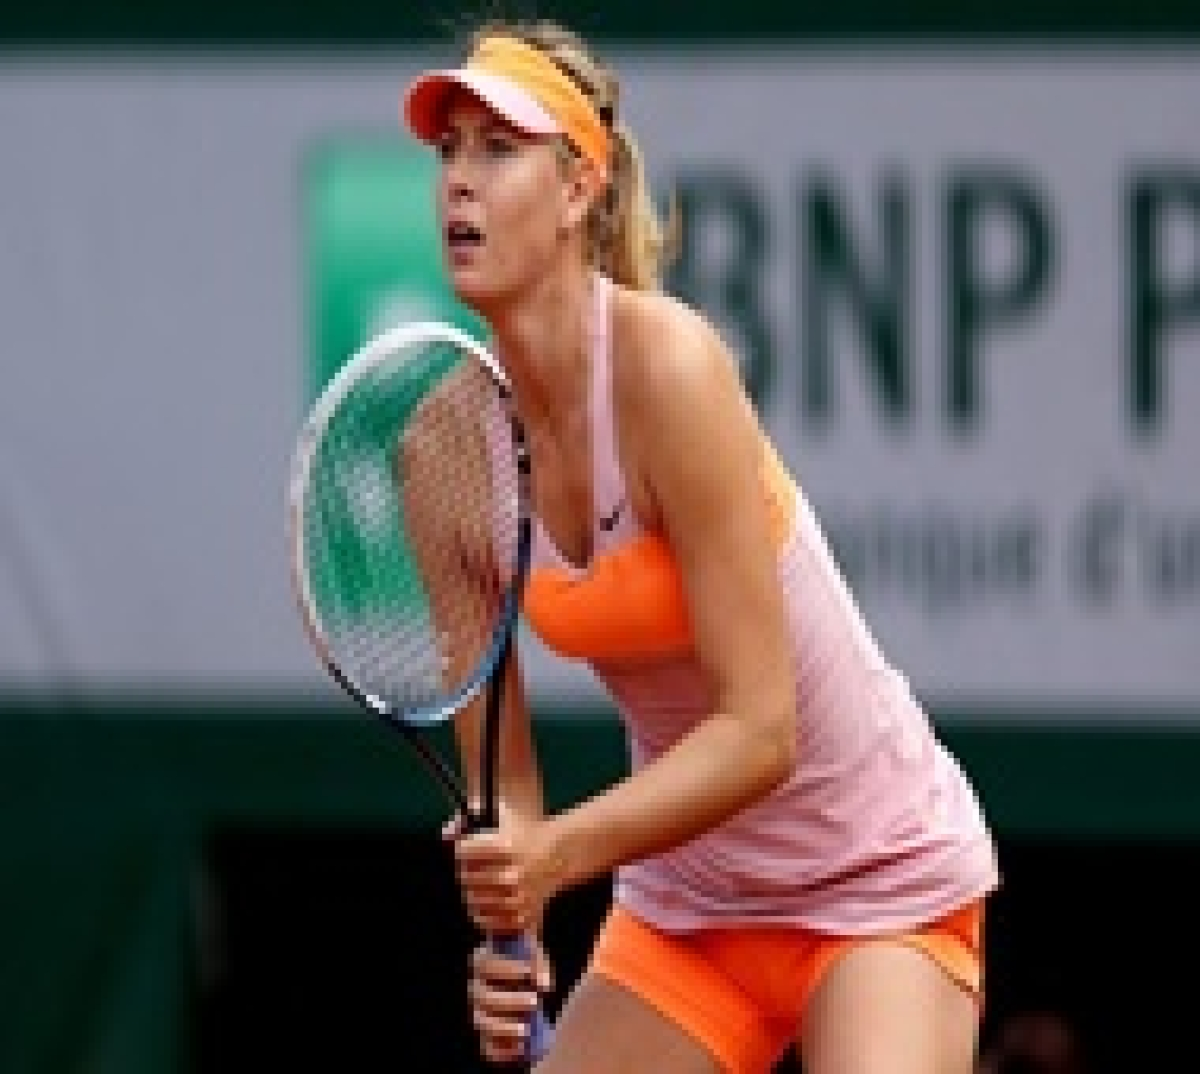 Tag Heuer not to renew contract with dope tainted Sharapova